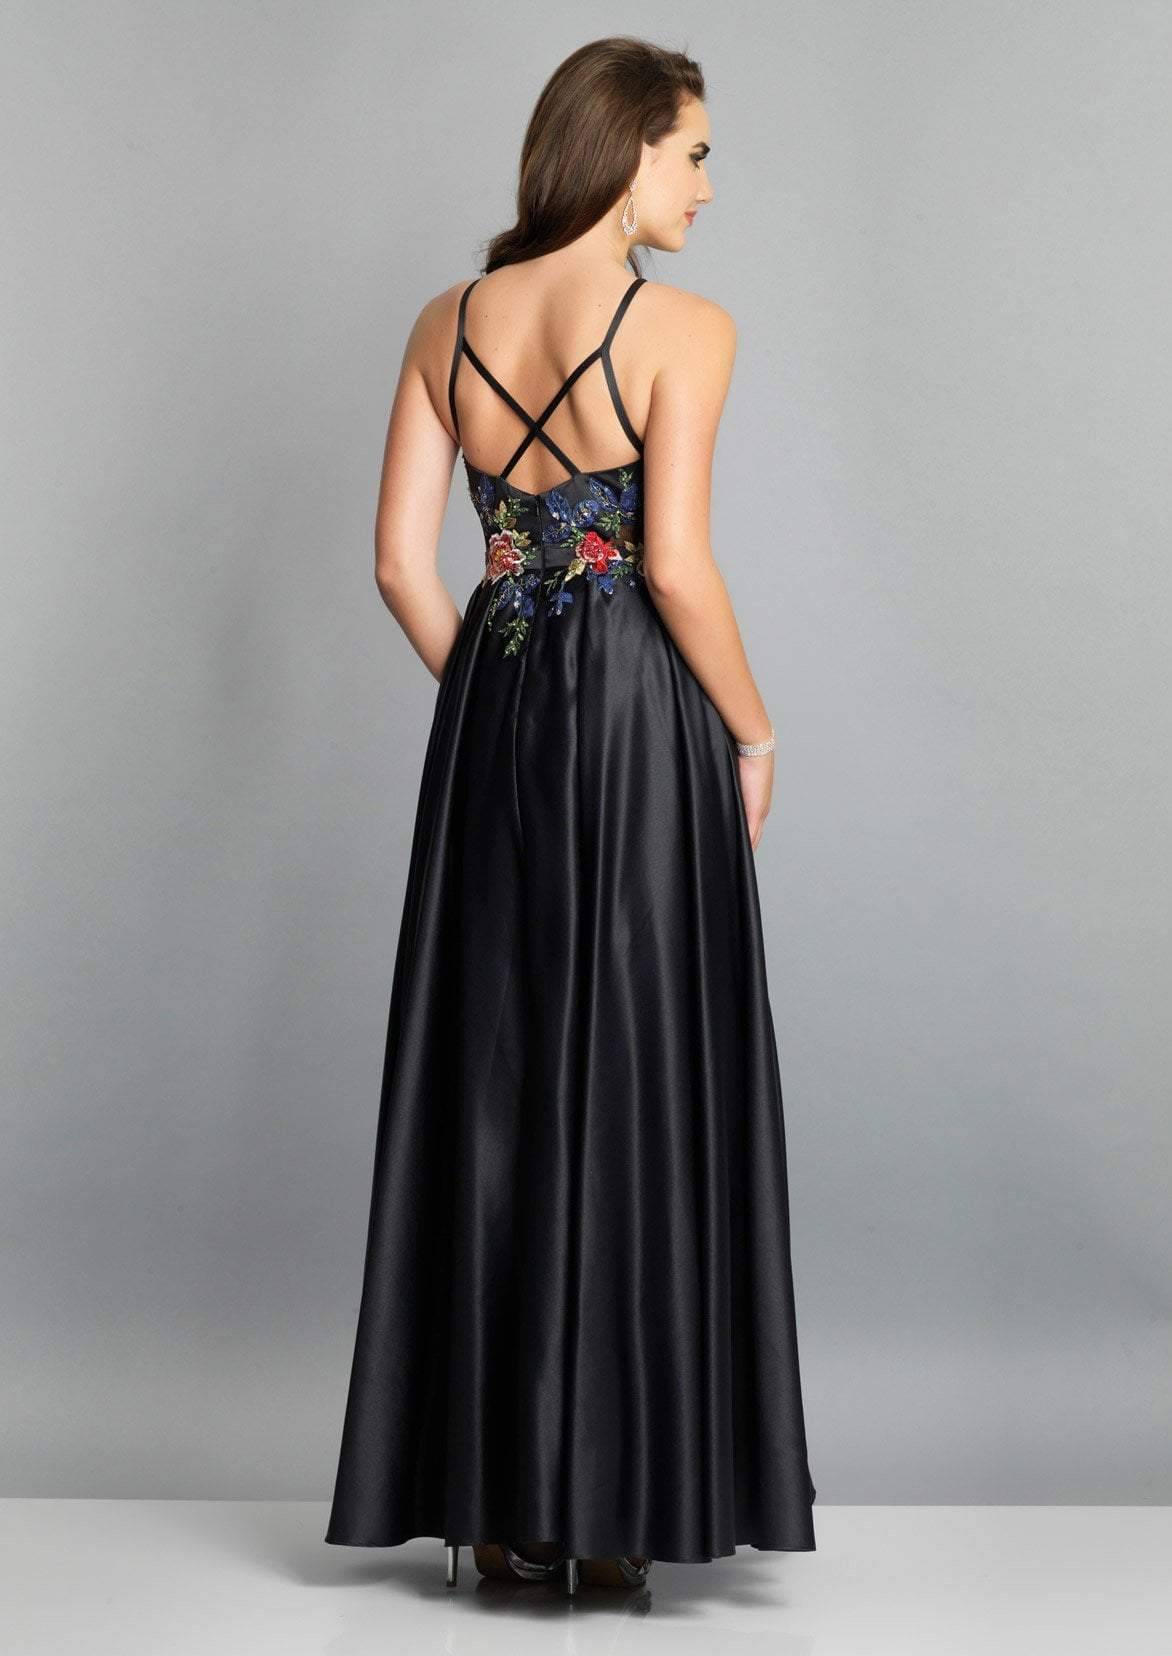 Dave & Johnny - Floral Embroidered Jewel Bodice A-Line Gown A7616  In Black